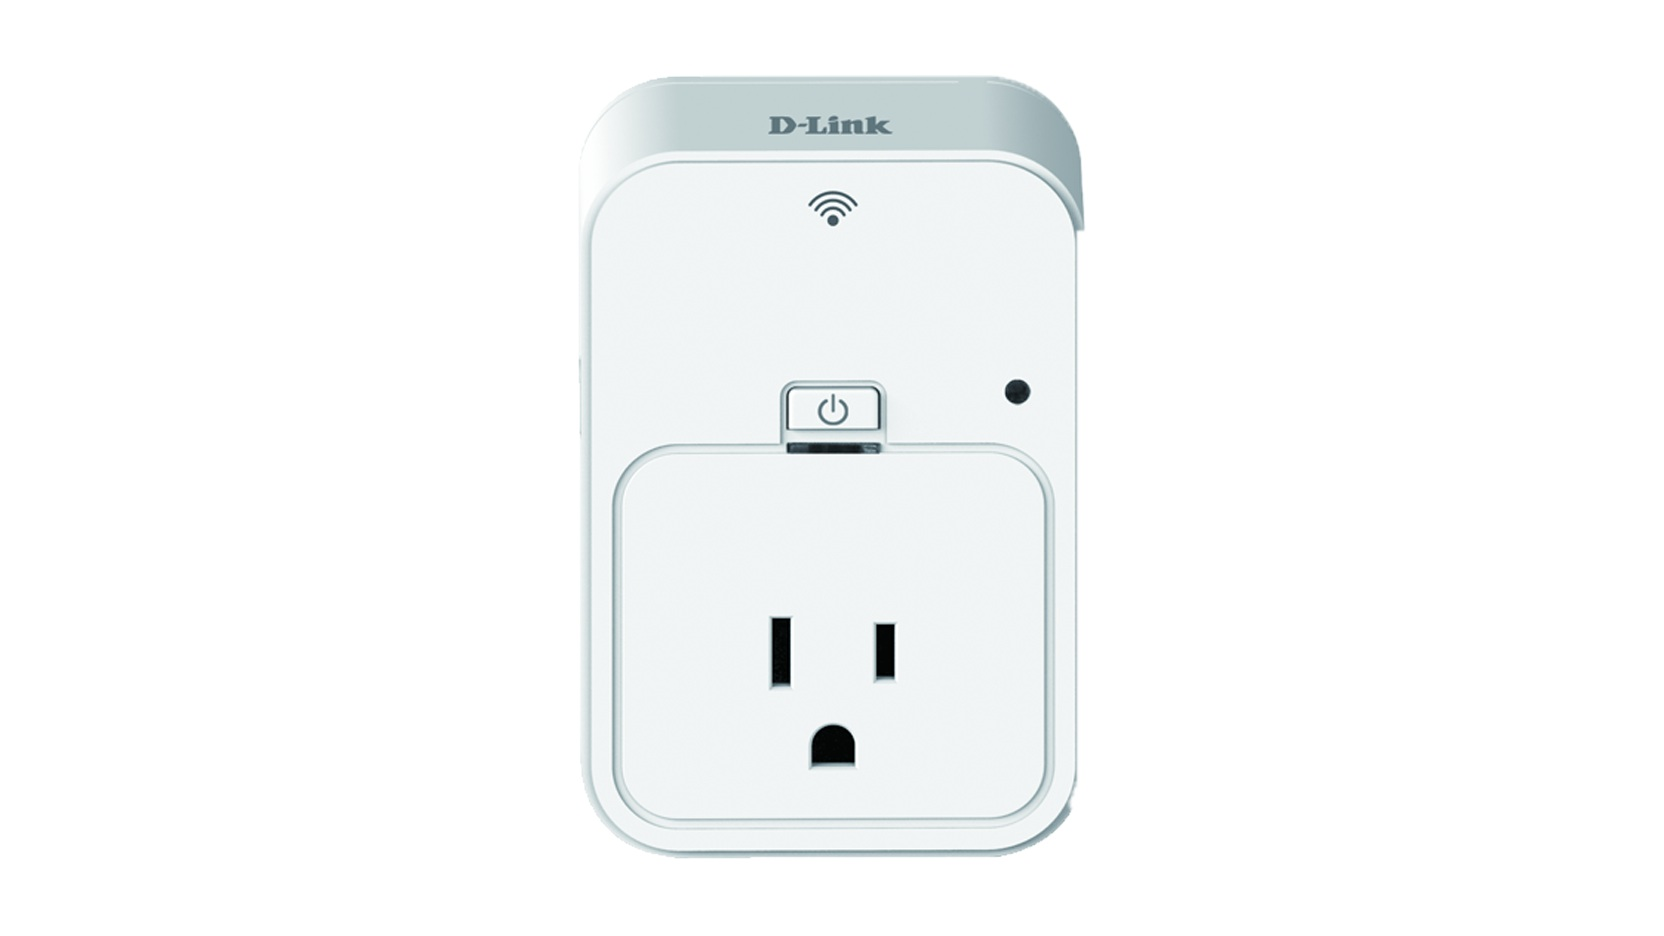 D Link Releases Wi Fi Smart Plug Brings The Connected Home